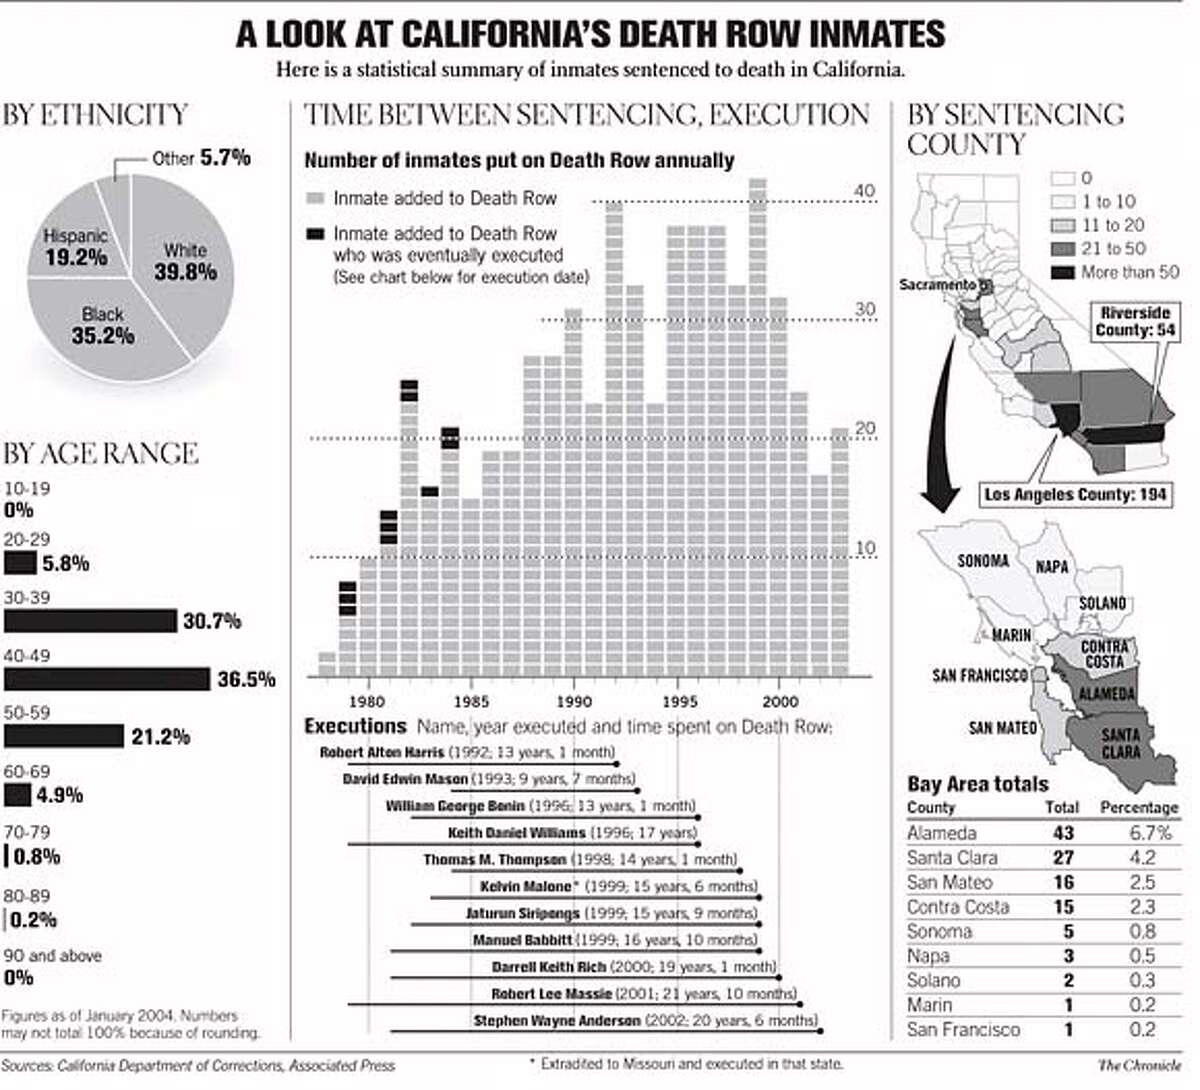 A Look at California's Death Row Inmates. Chronicle Graphic